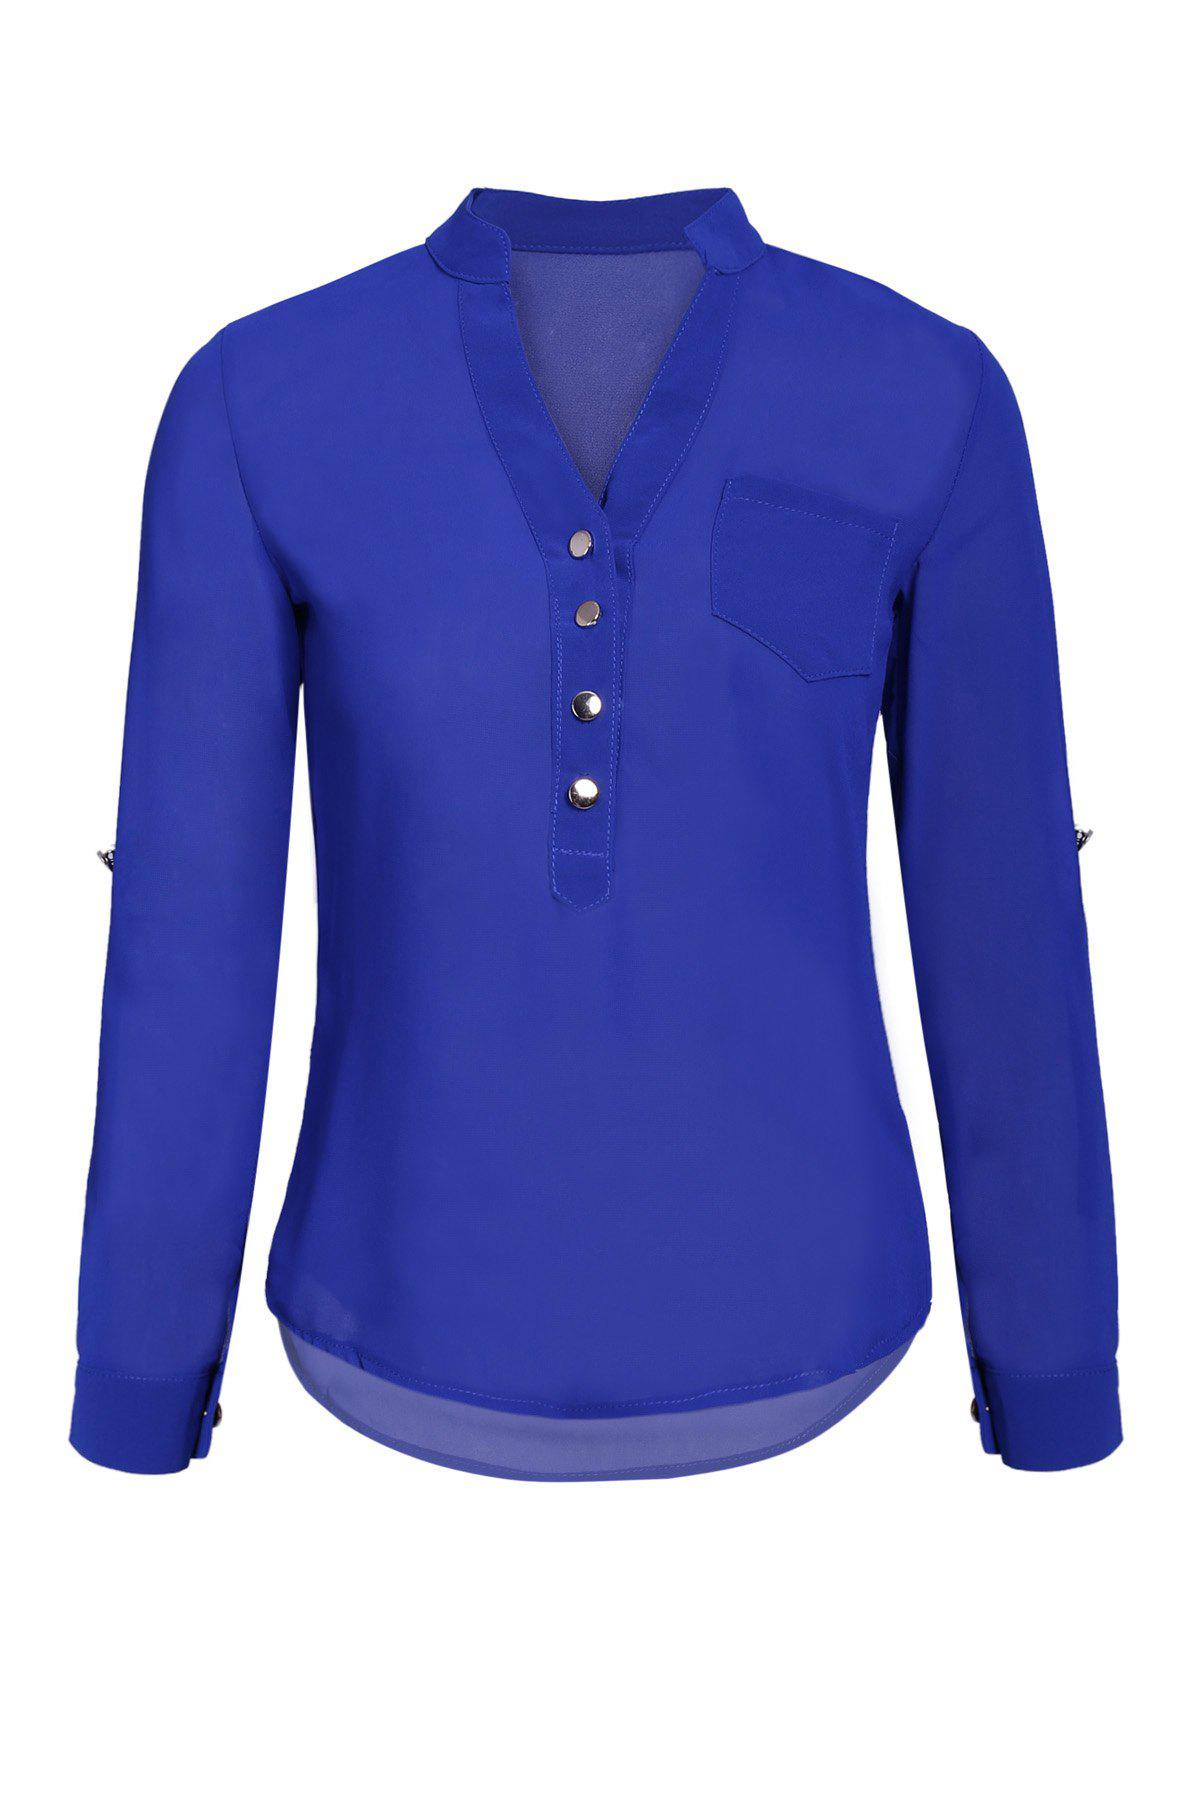 Simple Style V-Neck Chiffon Solid Color Long Sleeve Blouse For Women women s long sleeve solid chiffon blouse